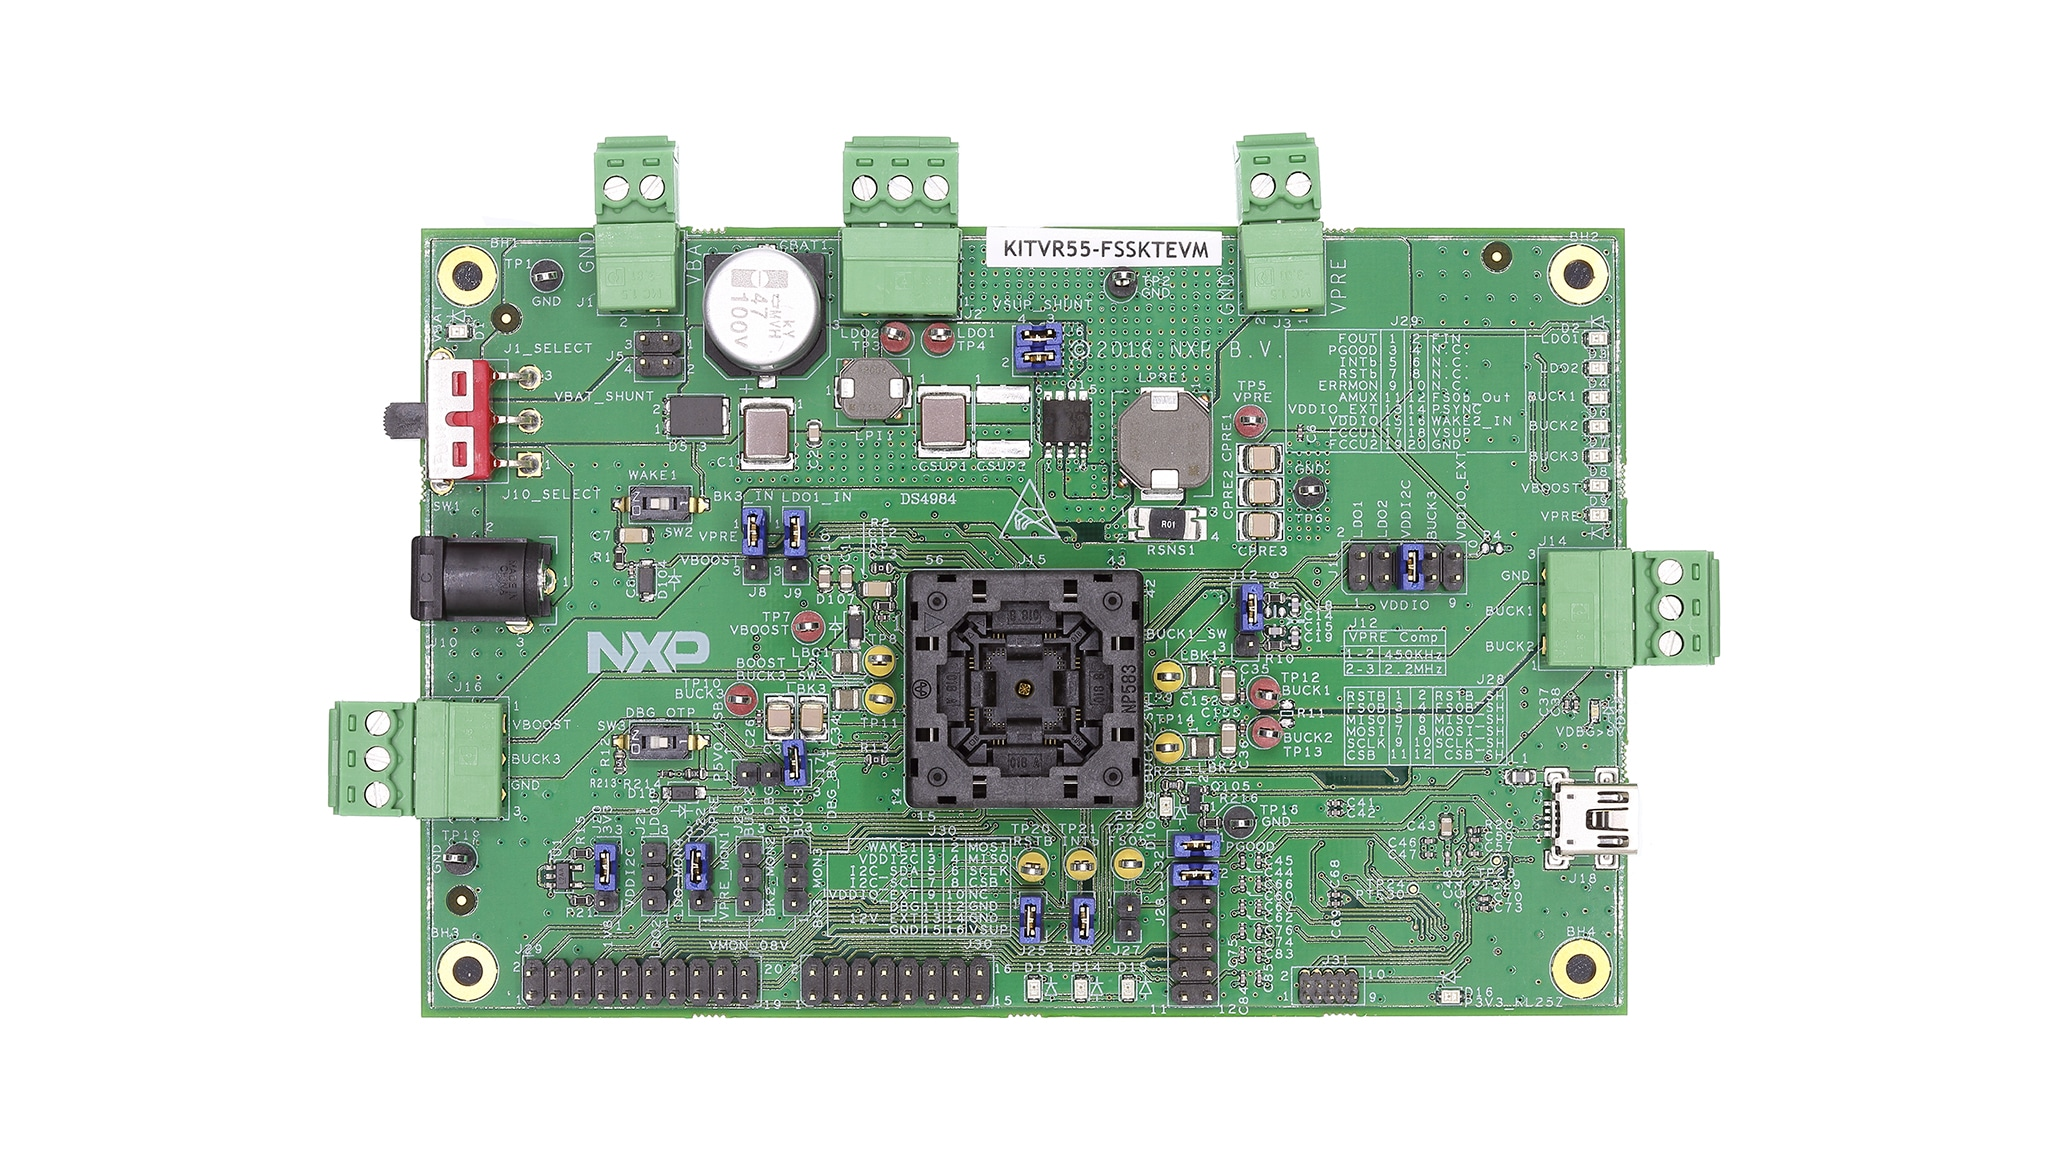 KITVR55-FSSKTEVM | VR5500 Safety SBC Programming Board